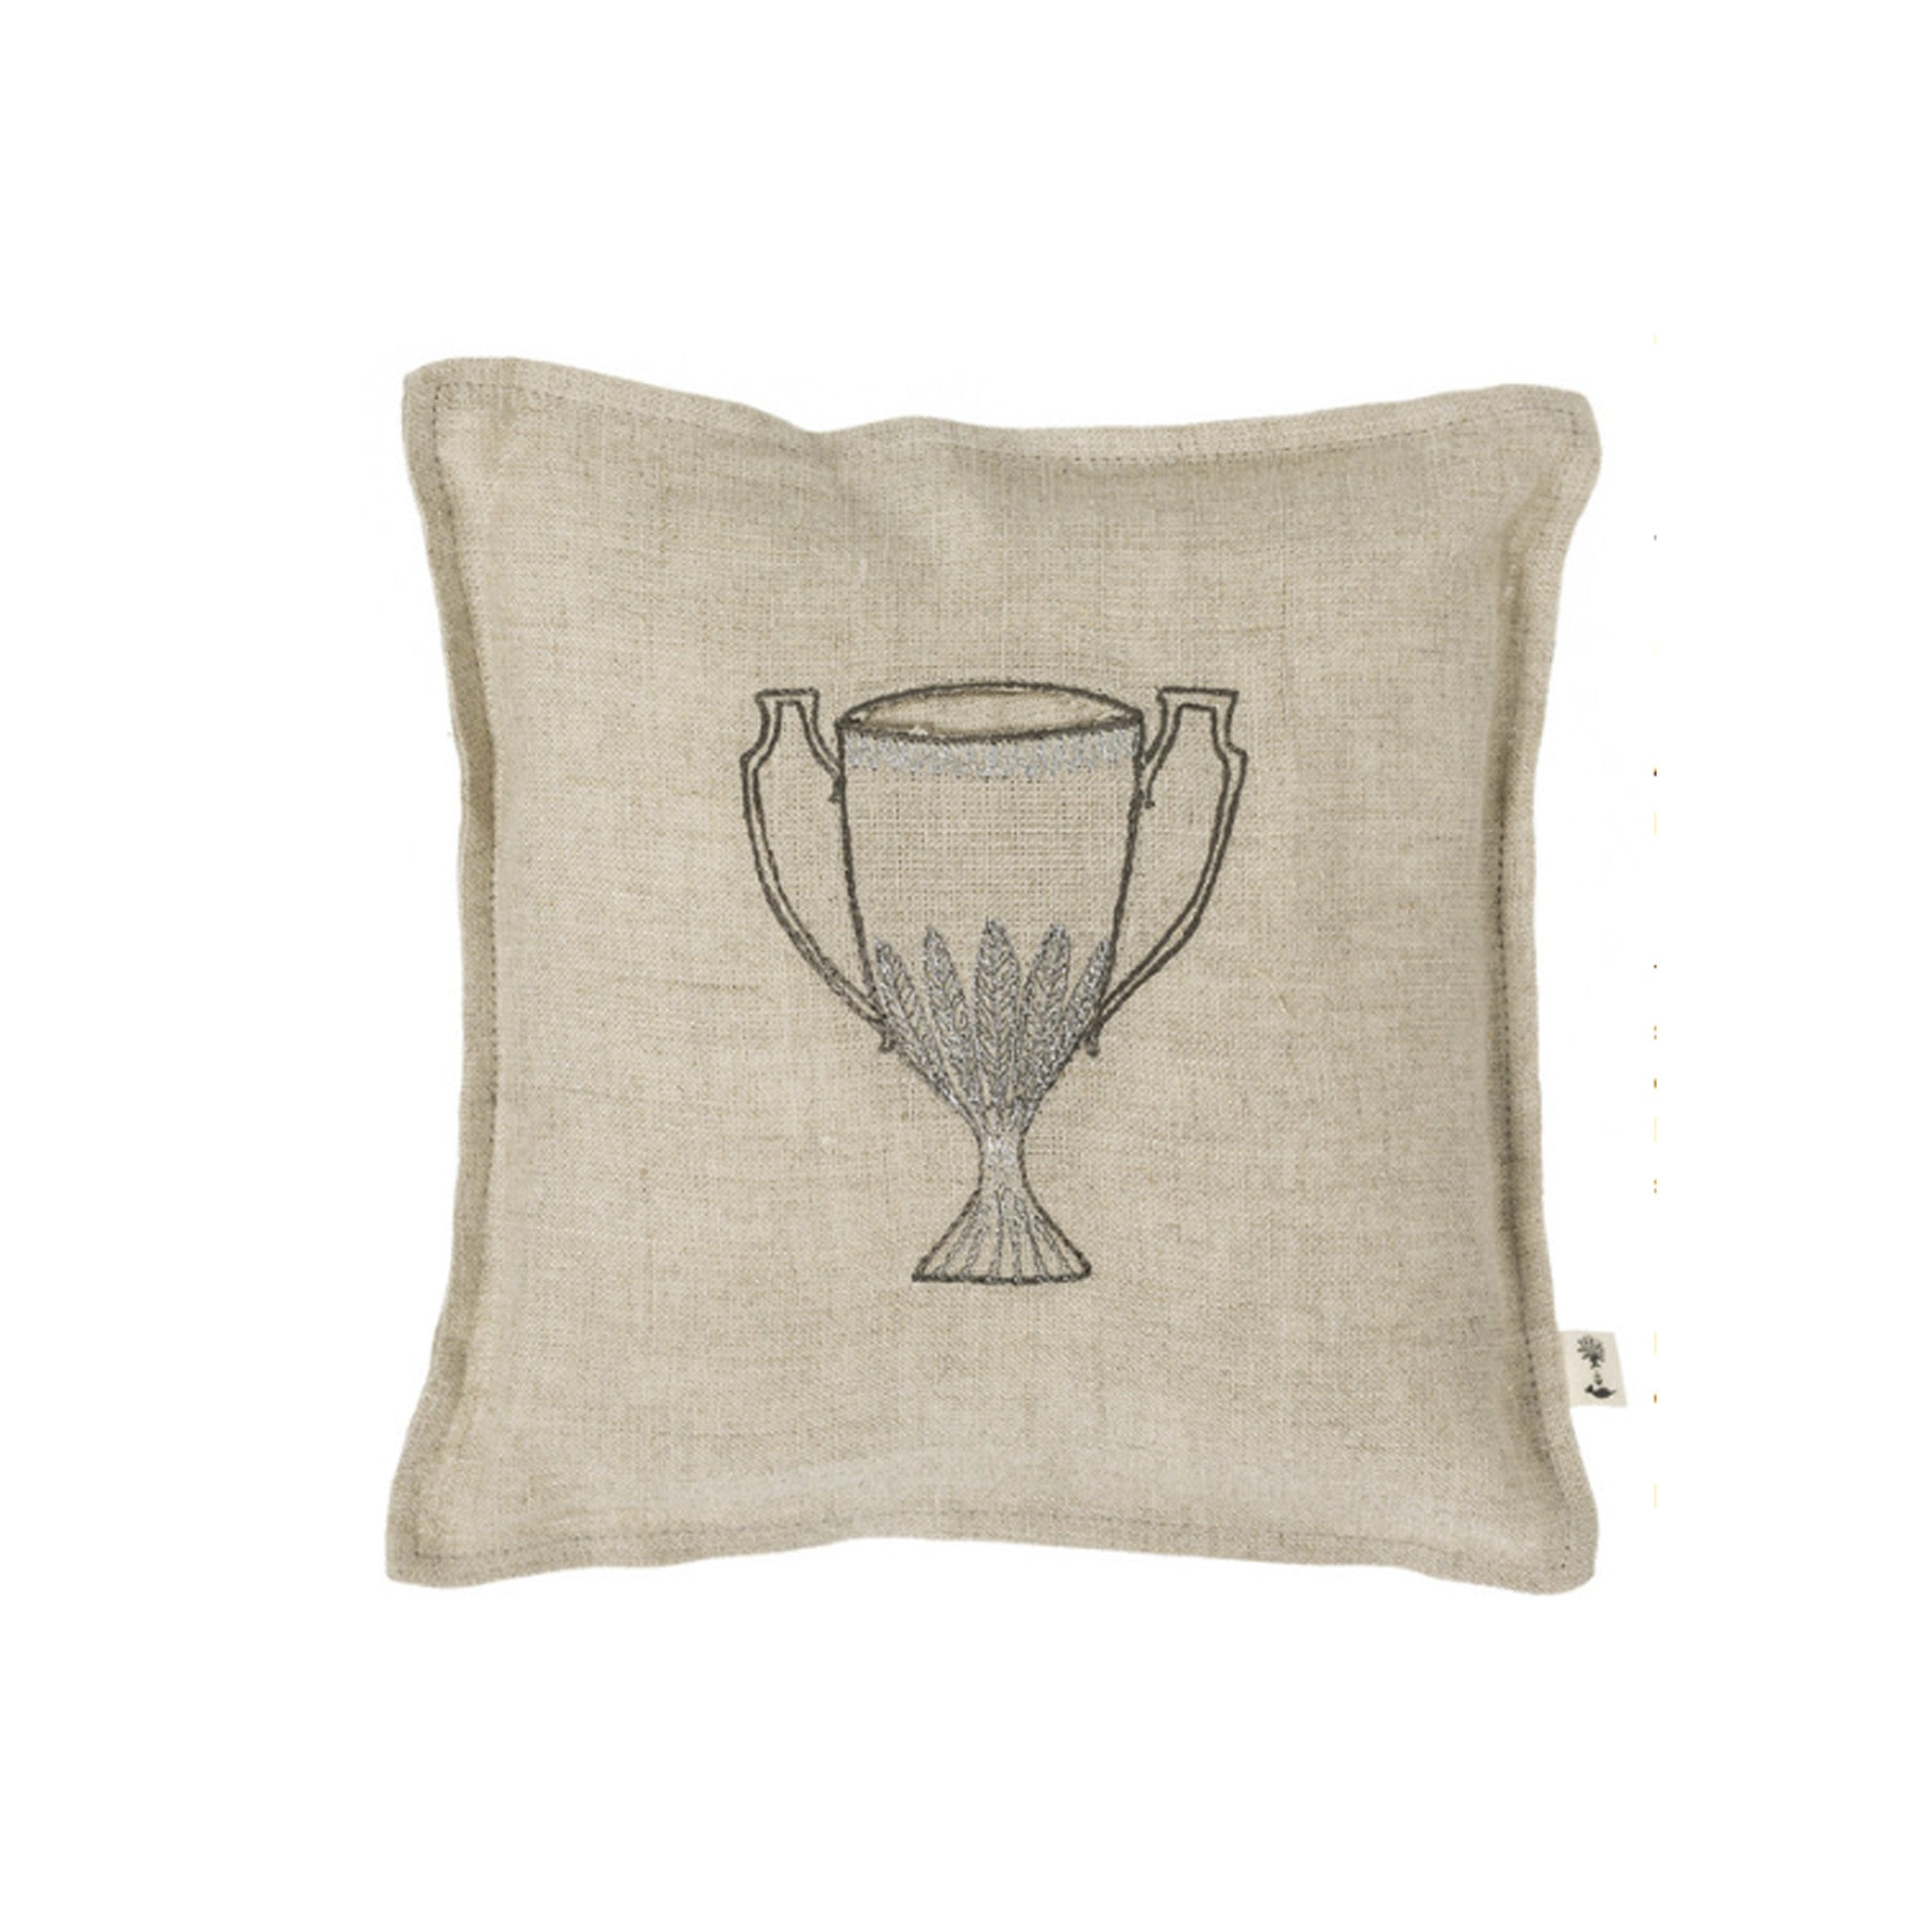 Coral and Tusk : Champ Pillow